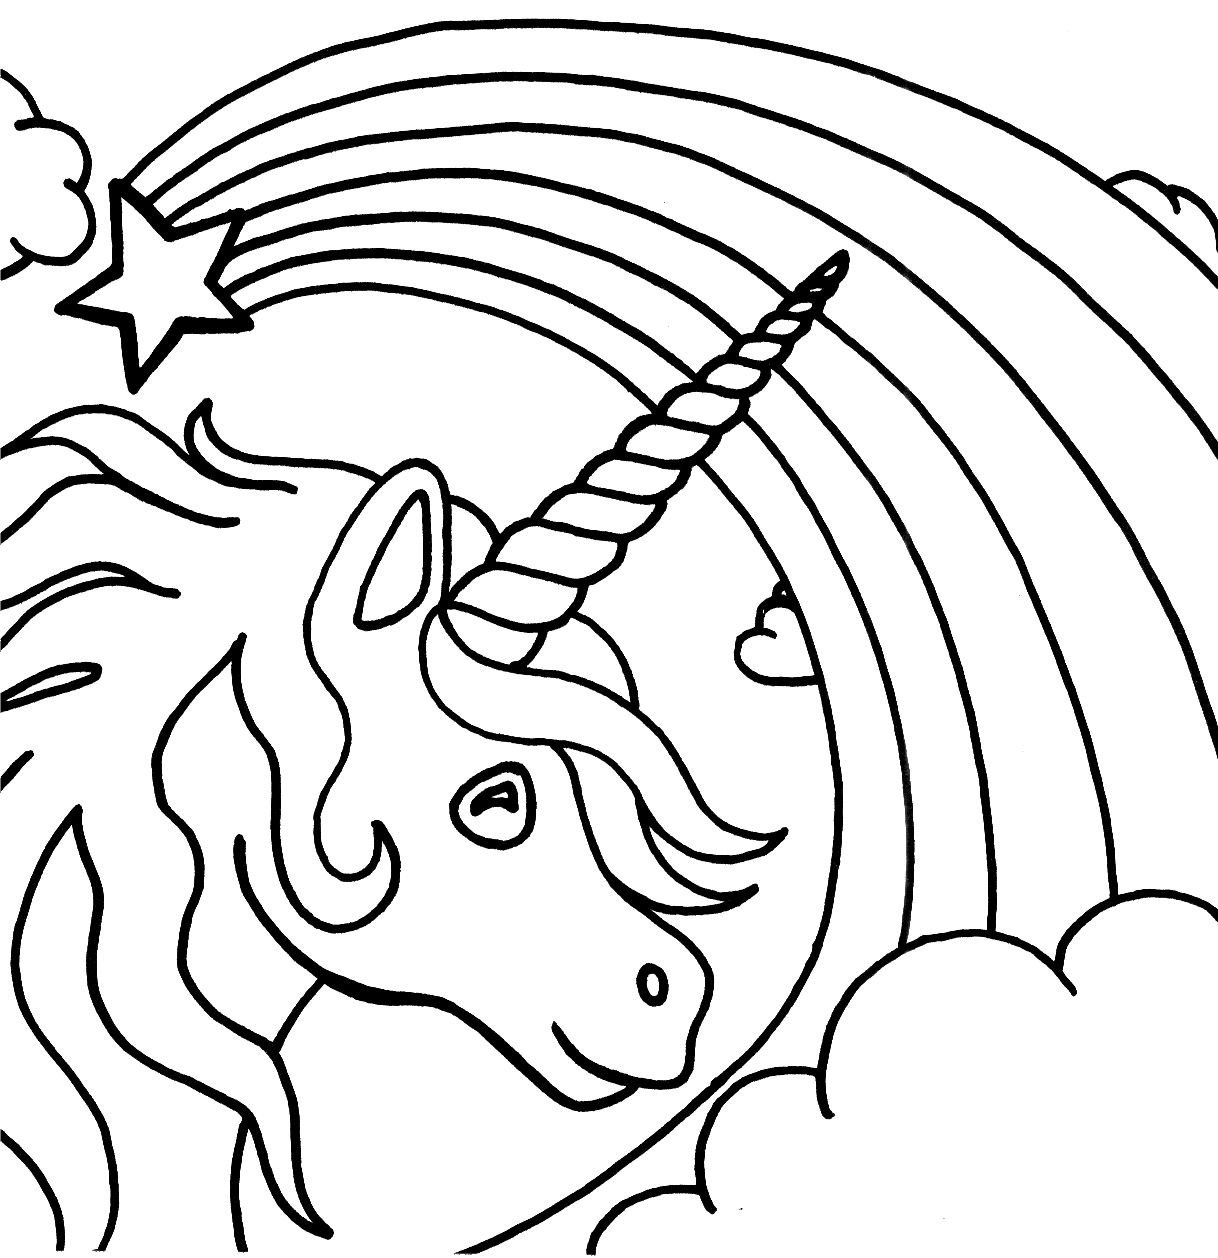 1218x1258 Free Printable Unicorn Coloring Pages For Kids Useful Of Unicorns